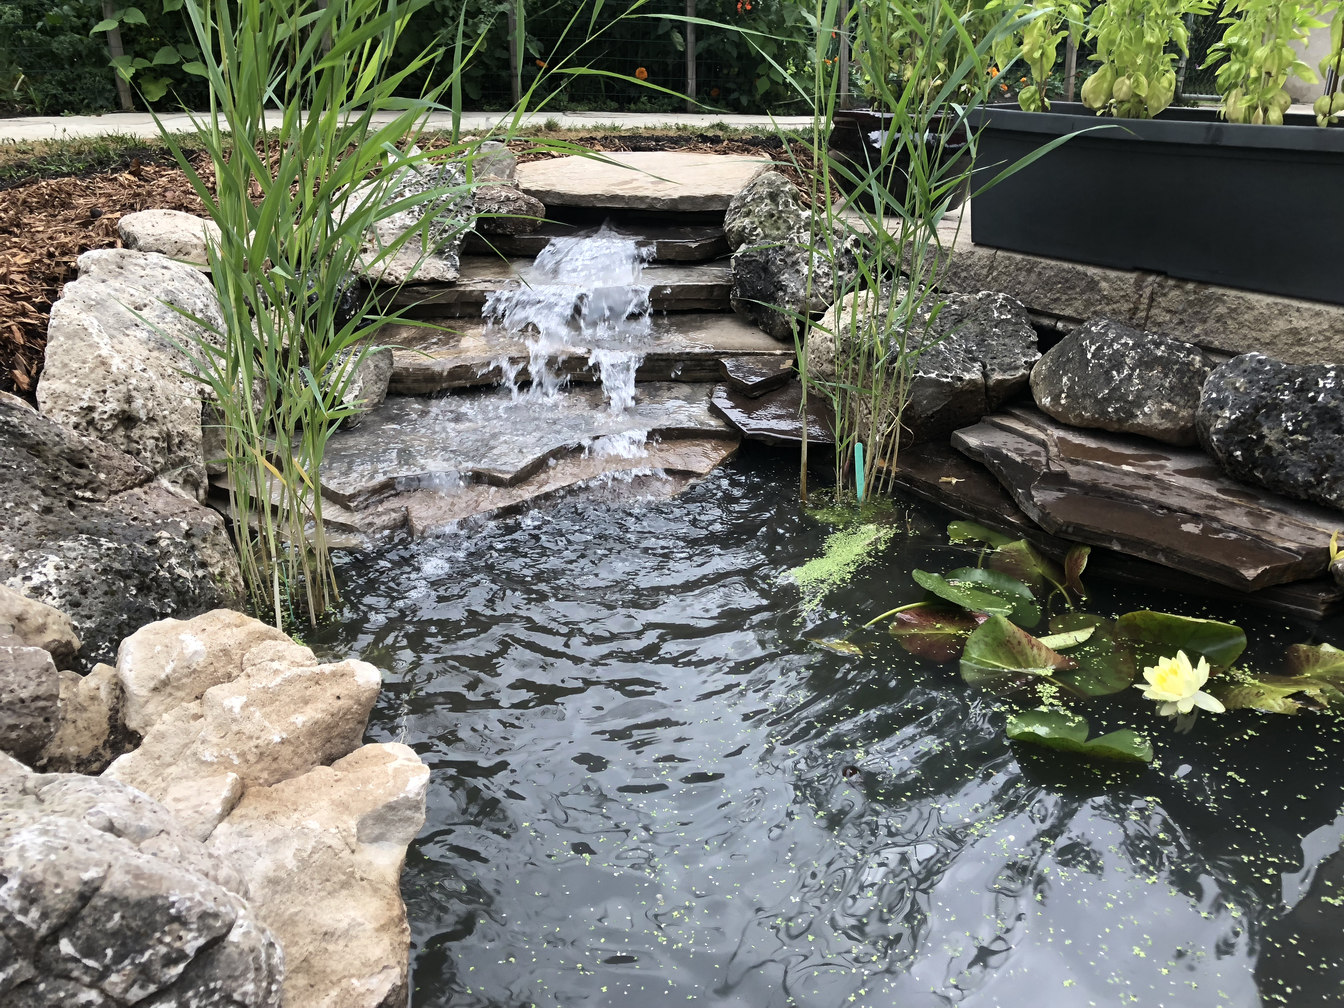 A project in or near London Ontario, by O'Connor Stone & Landscape, a local landscape and hardscape contractor - Water Feature: Planted Fish Pond with Stone Water Fall.